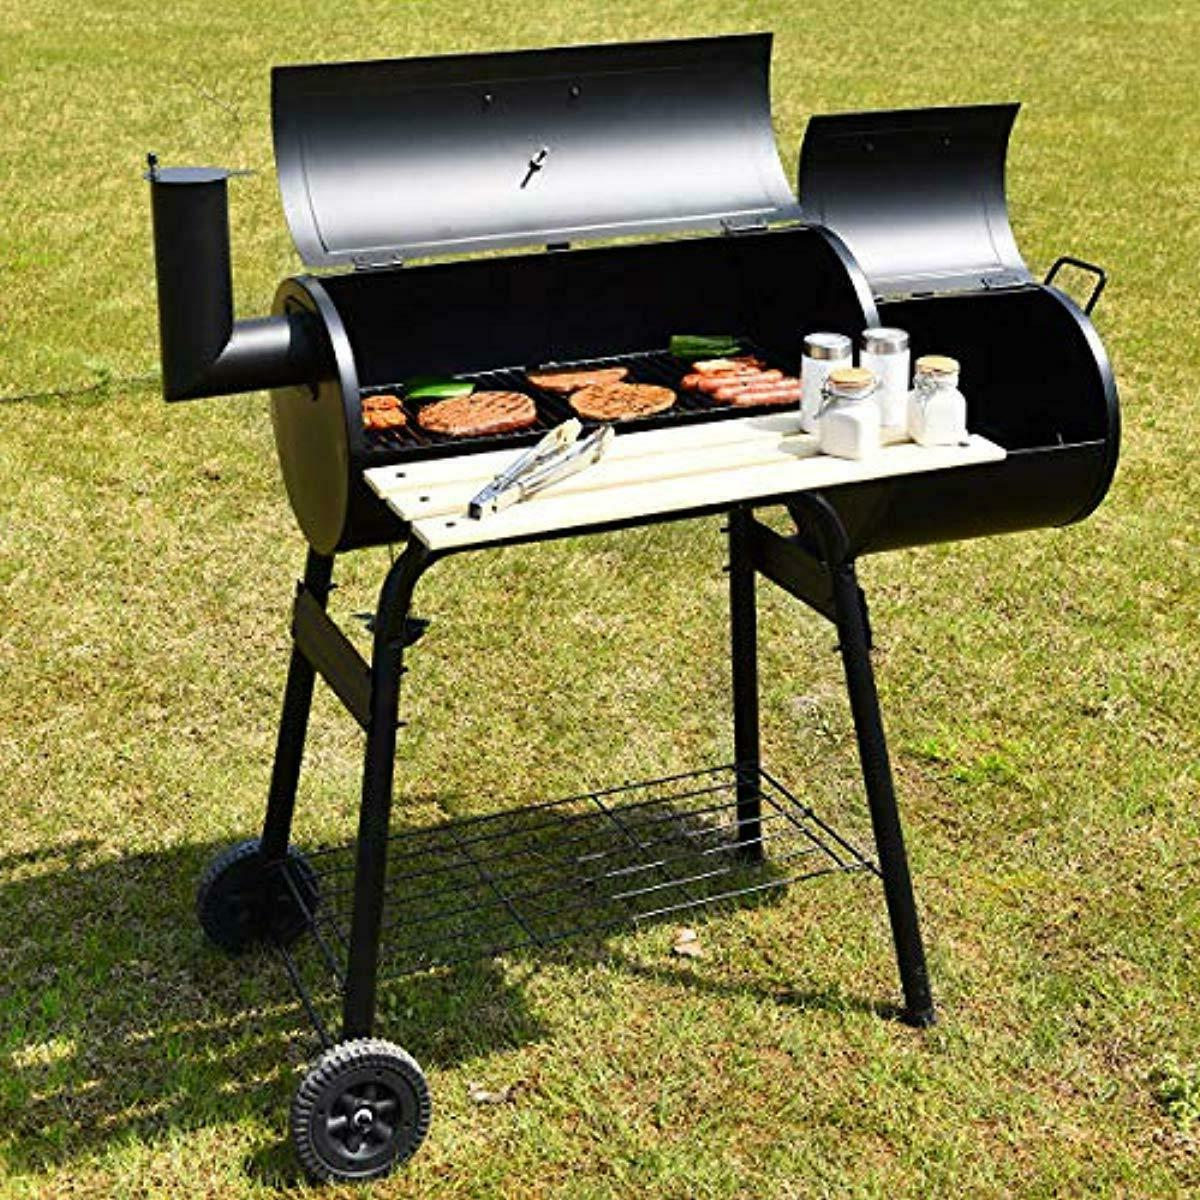 Giantex Grill Charcoal Barbecue Grill Outdoor Patio Backyard Home Meat